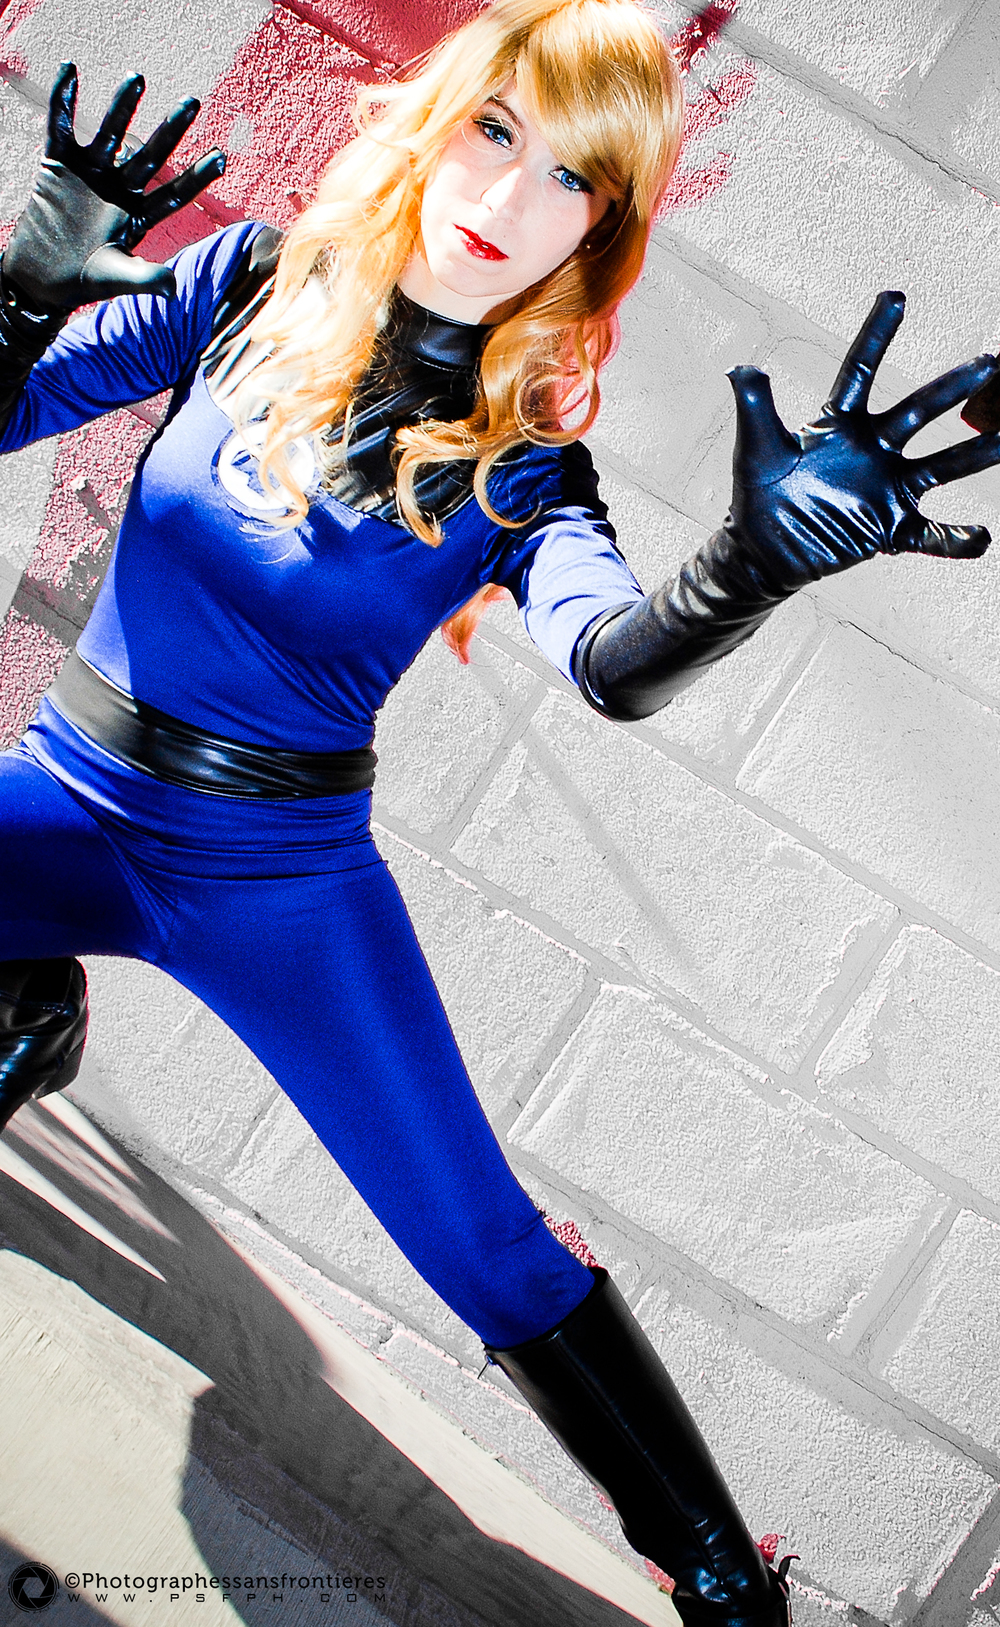 Blackrois Invisible Woman | Photo by:Photographes Sans Frontieres